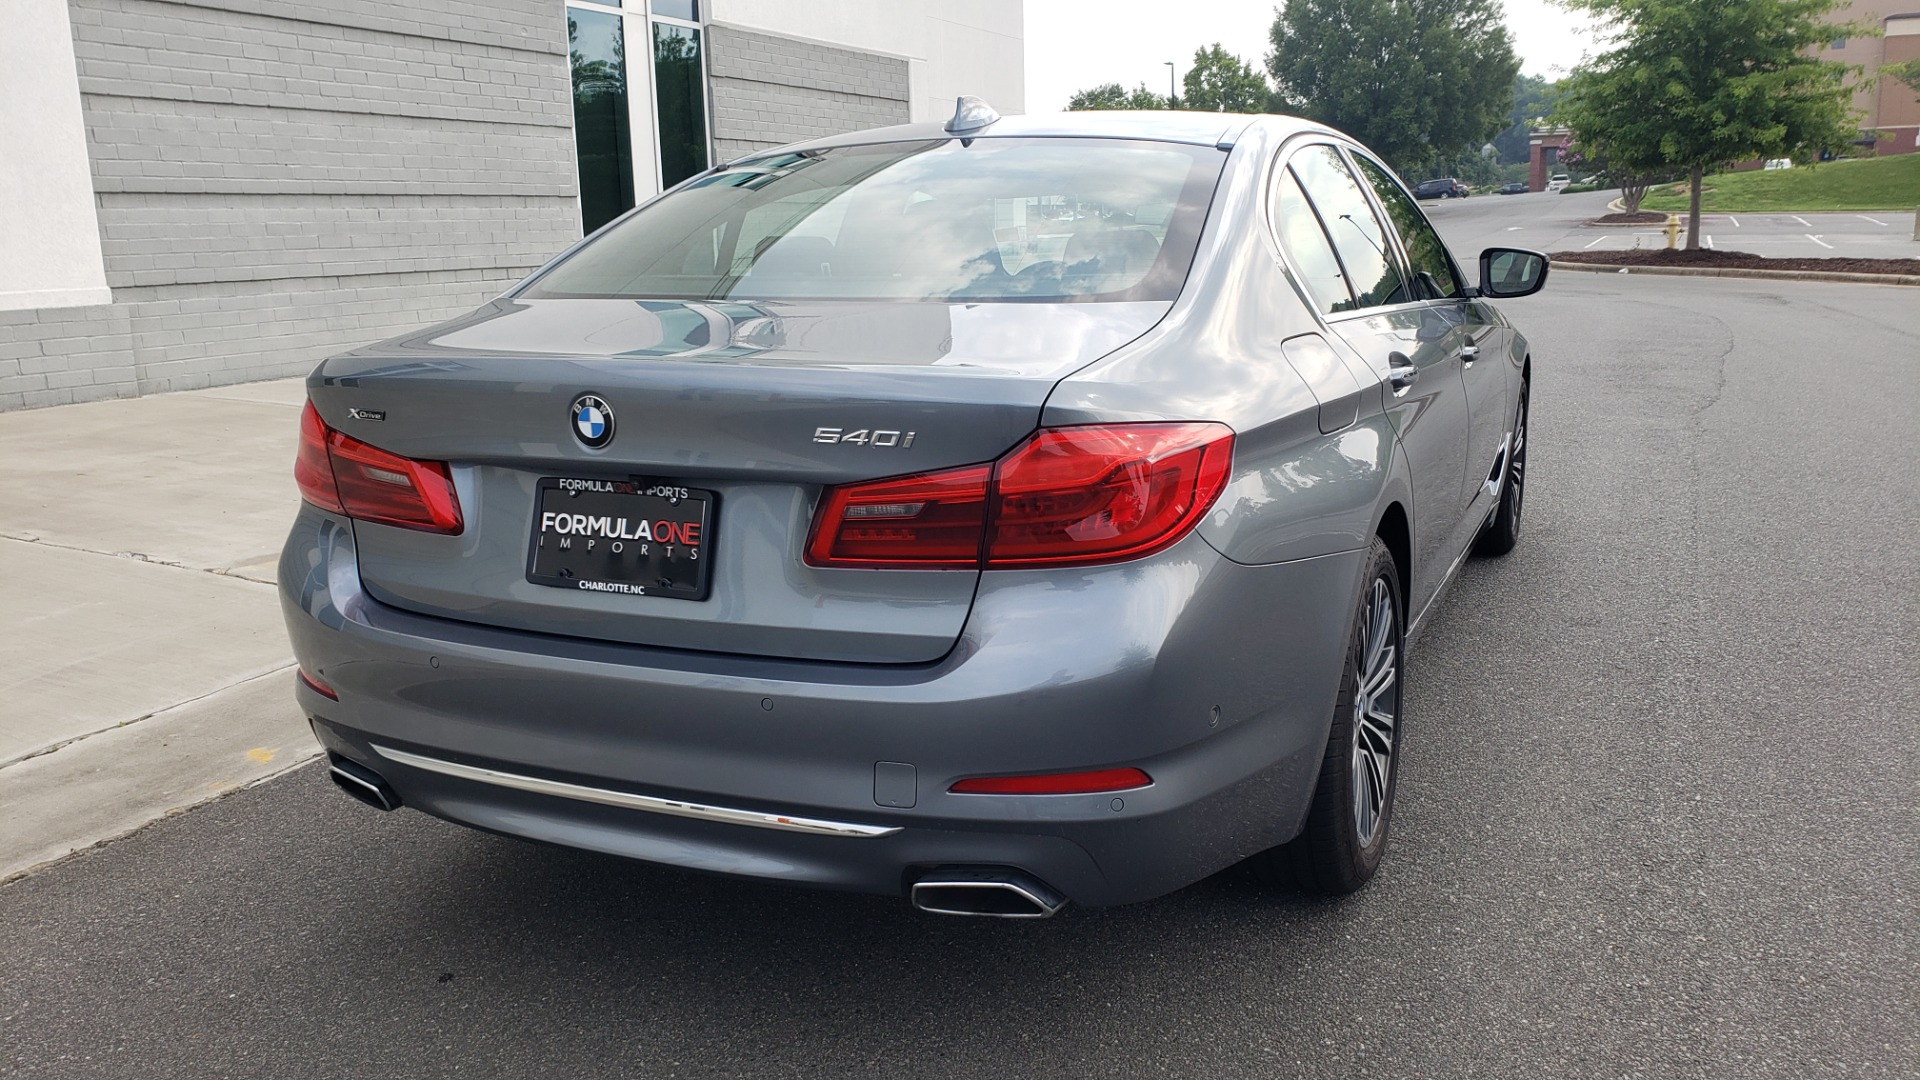 Used 2018 BMW 5 SERIES 540I XDRIVE PREMIUM / EXECUTIVE / LUXURY / H/K SND / REMOTE CONTROL PARKING for sale $40,995 at Formula Imports in Charlotte NC 28227 2